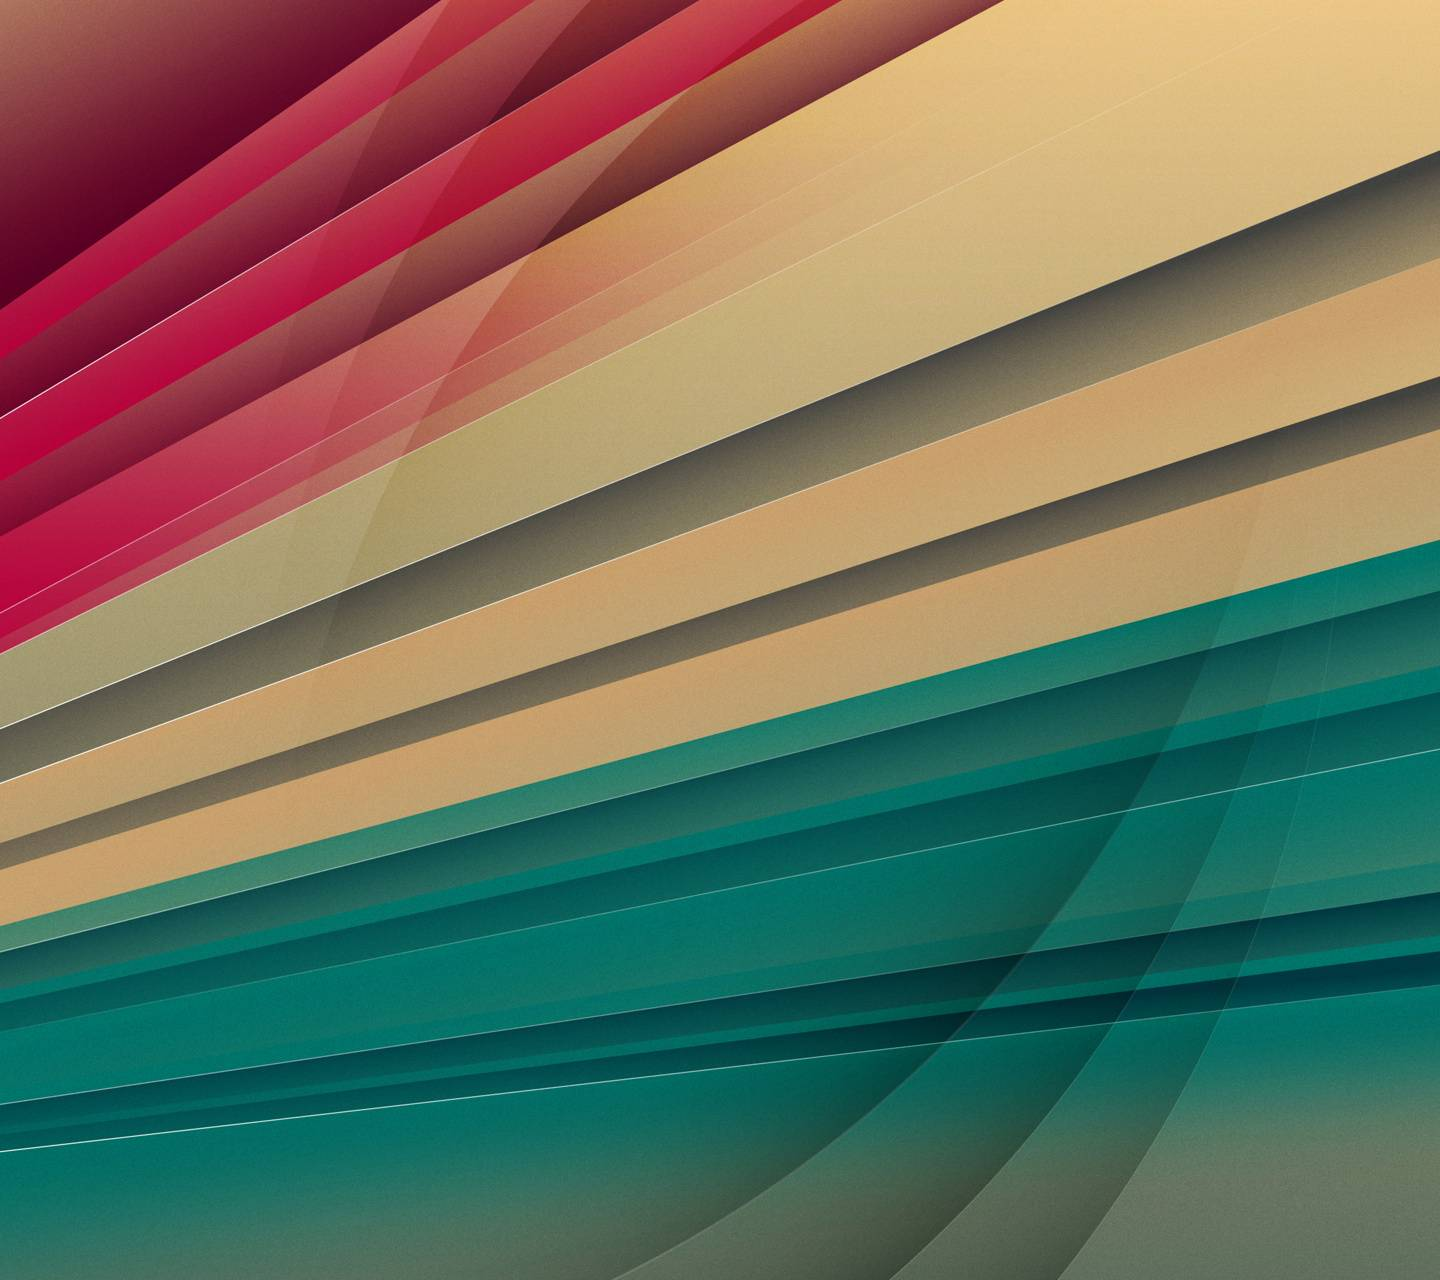 Abstract Line 03